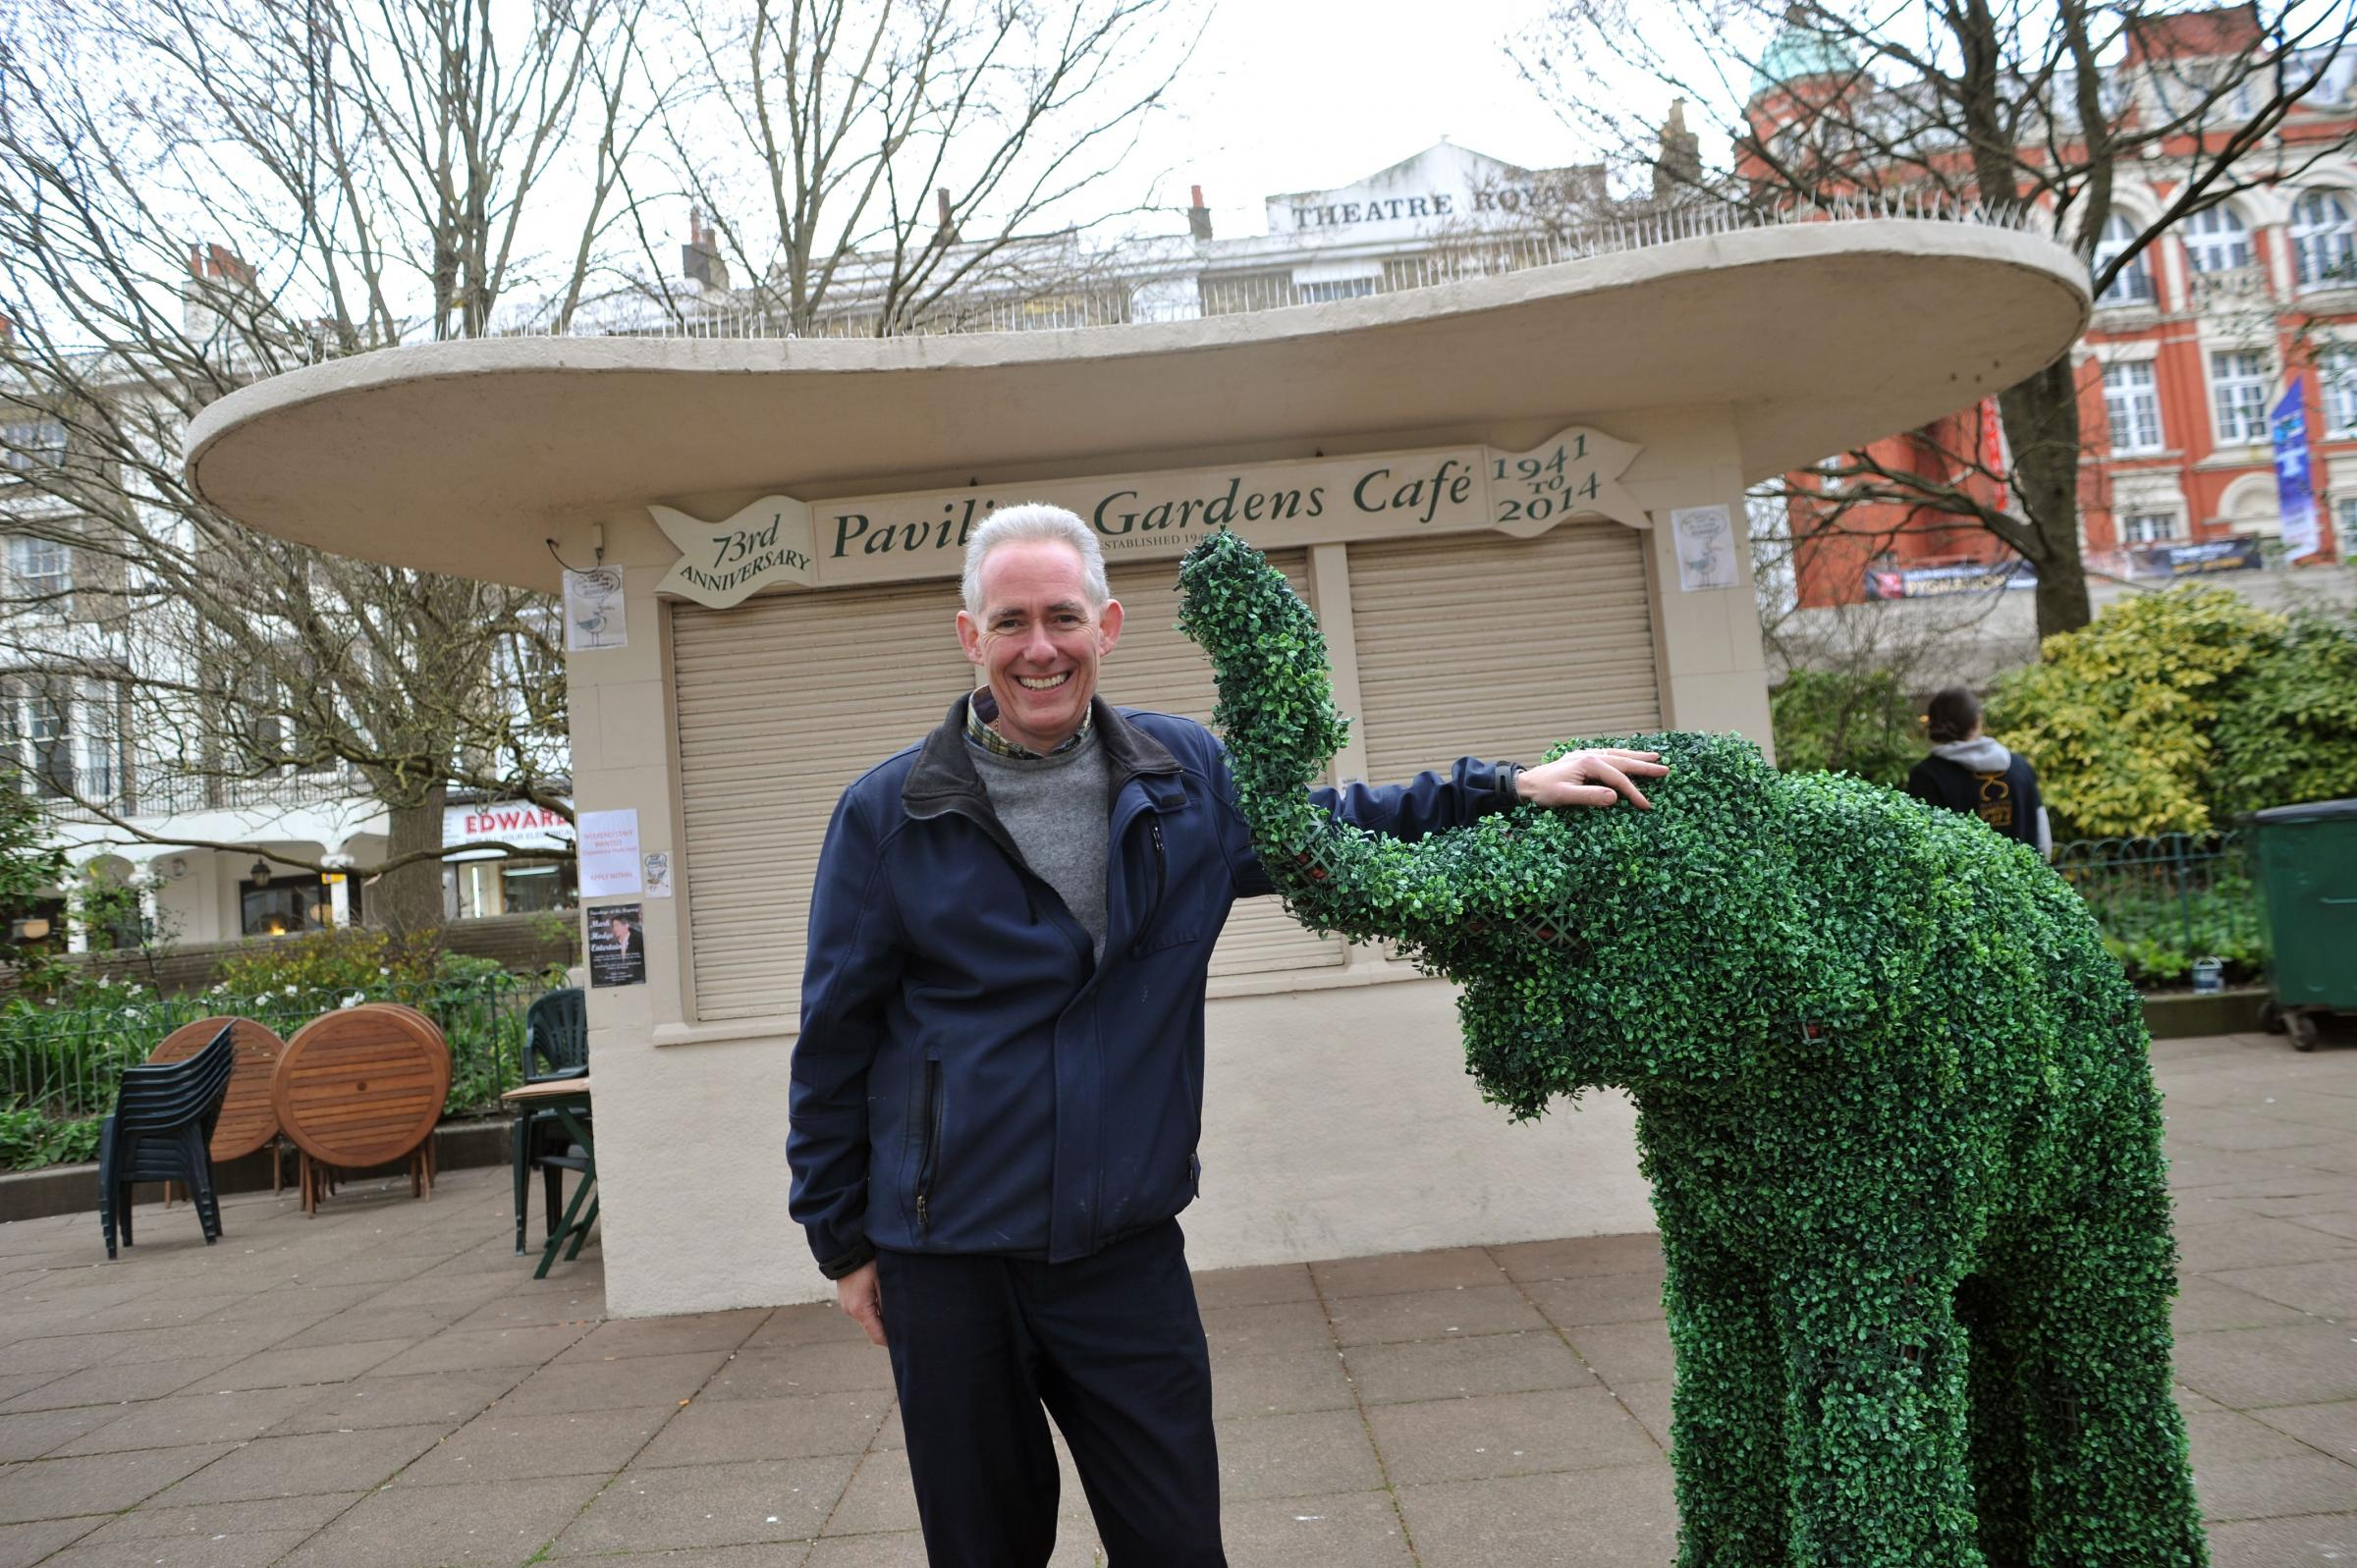 Brighton's Pavilion Gardens Cafe saved from closure